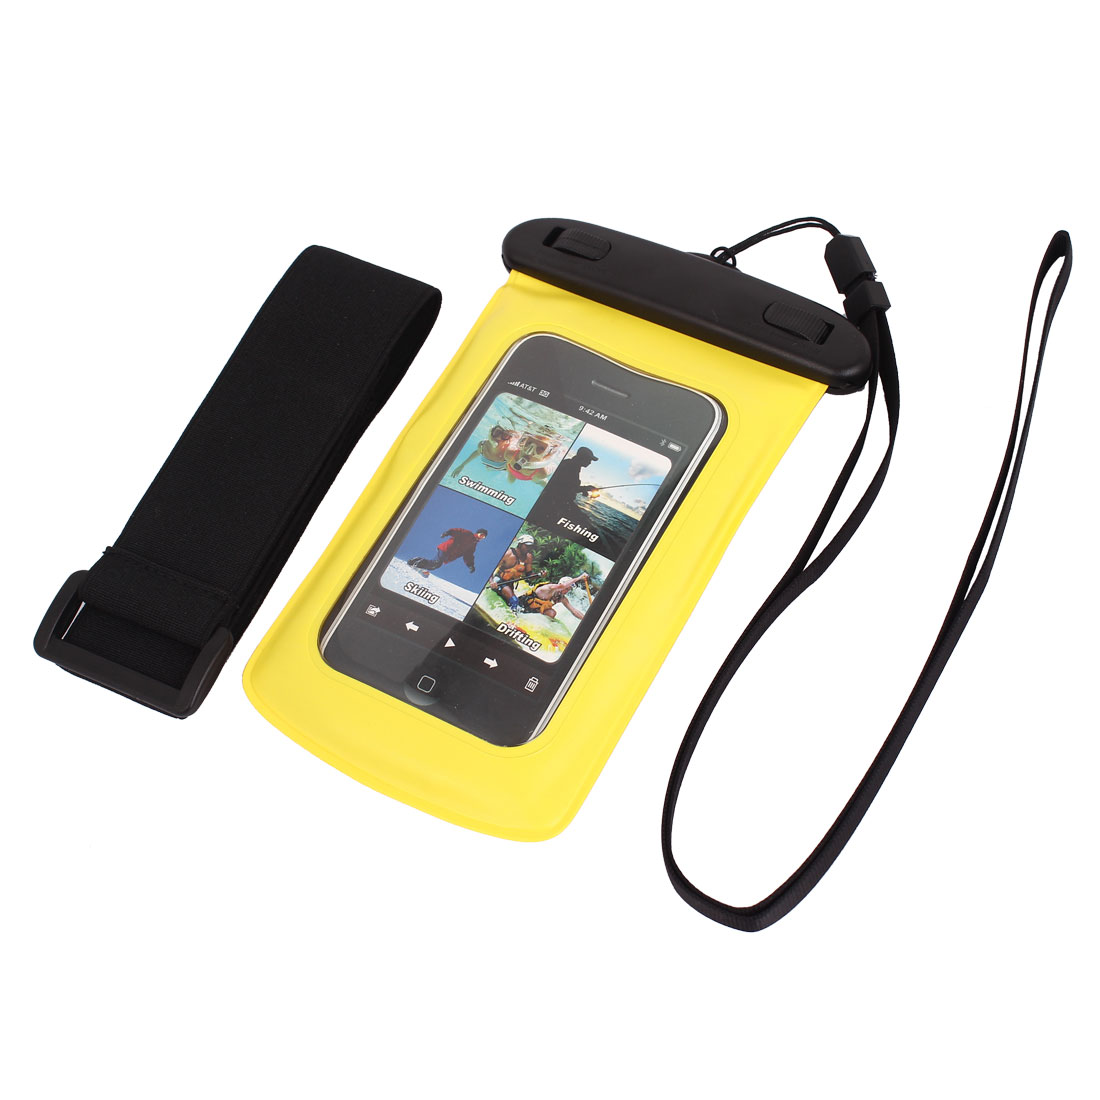 "Waterproof Case Dry Bag Skin Cover Pouch + Earplug Yellow for 4"" Cell Phone"